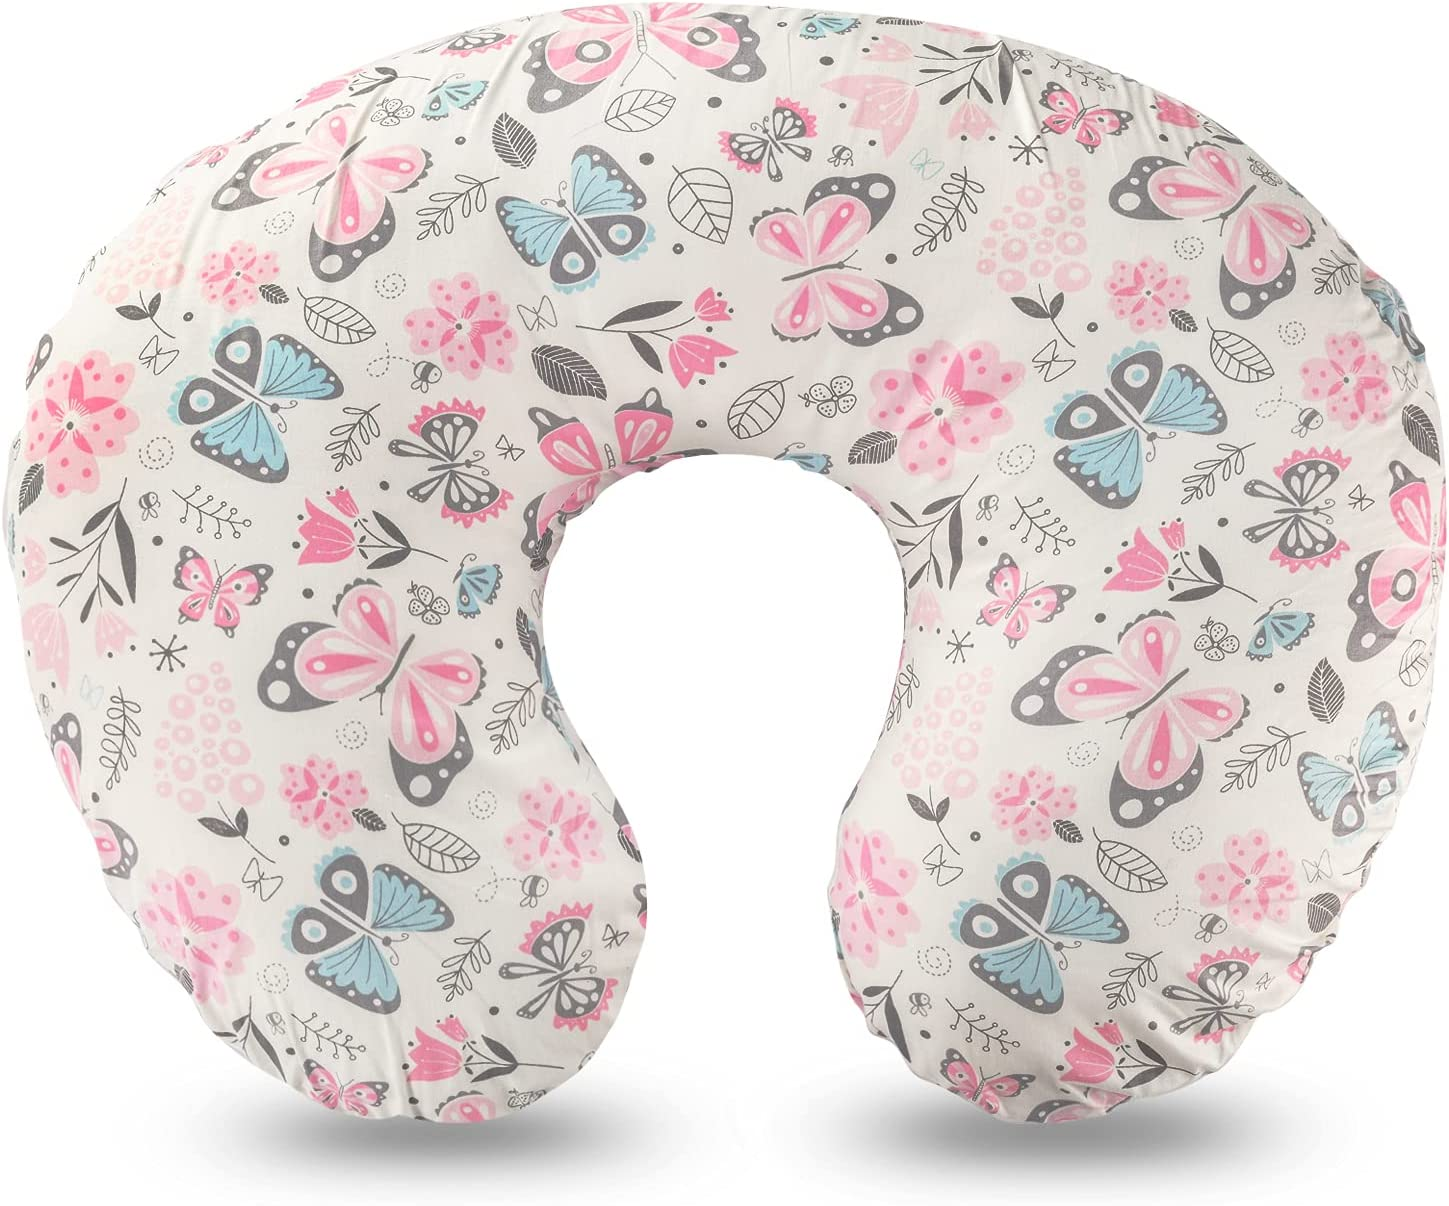 Nursing Pillow , Breastfeeding & Bottle Feeding Baby Support Pillow for Mom , Newborn Infant Snug Cotton Pillow Fits 0-12 Months Boys and Girls, Butterfly